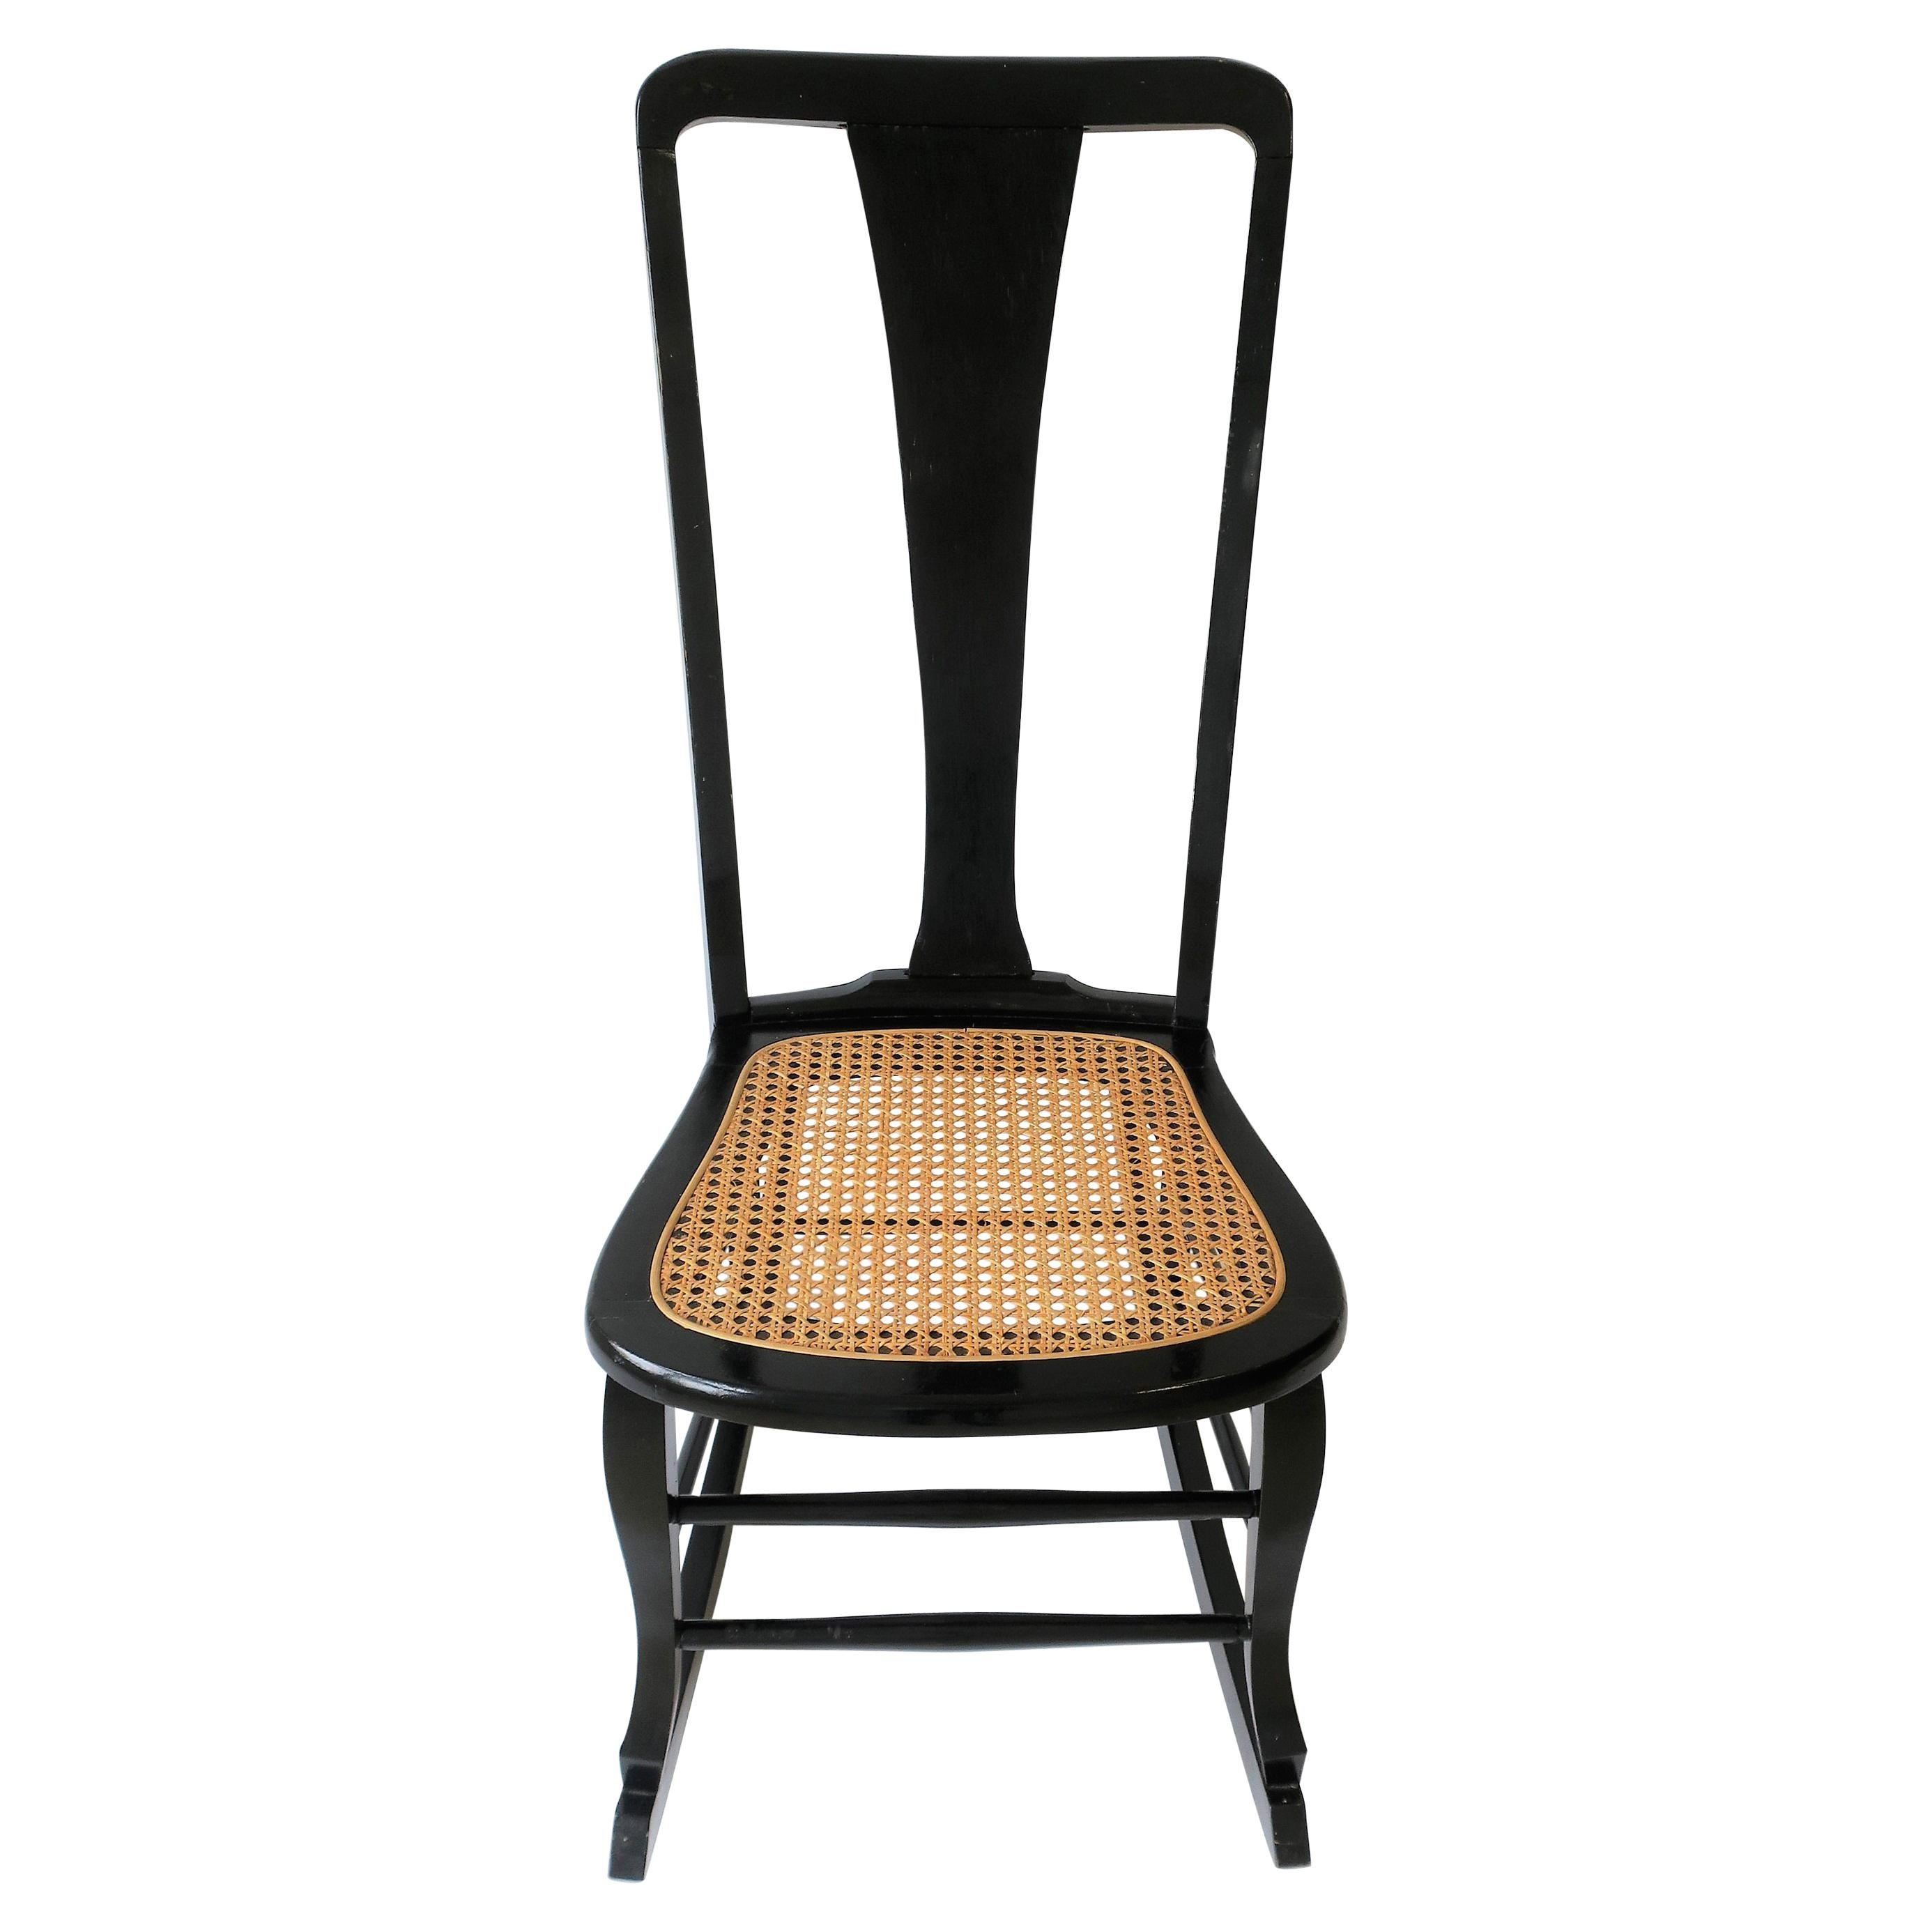 Black Lacquered Wood and Cane Rocking Chair